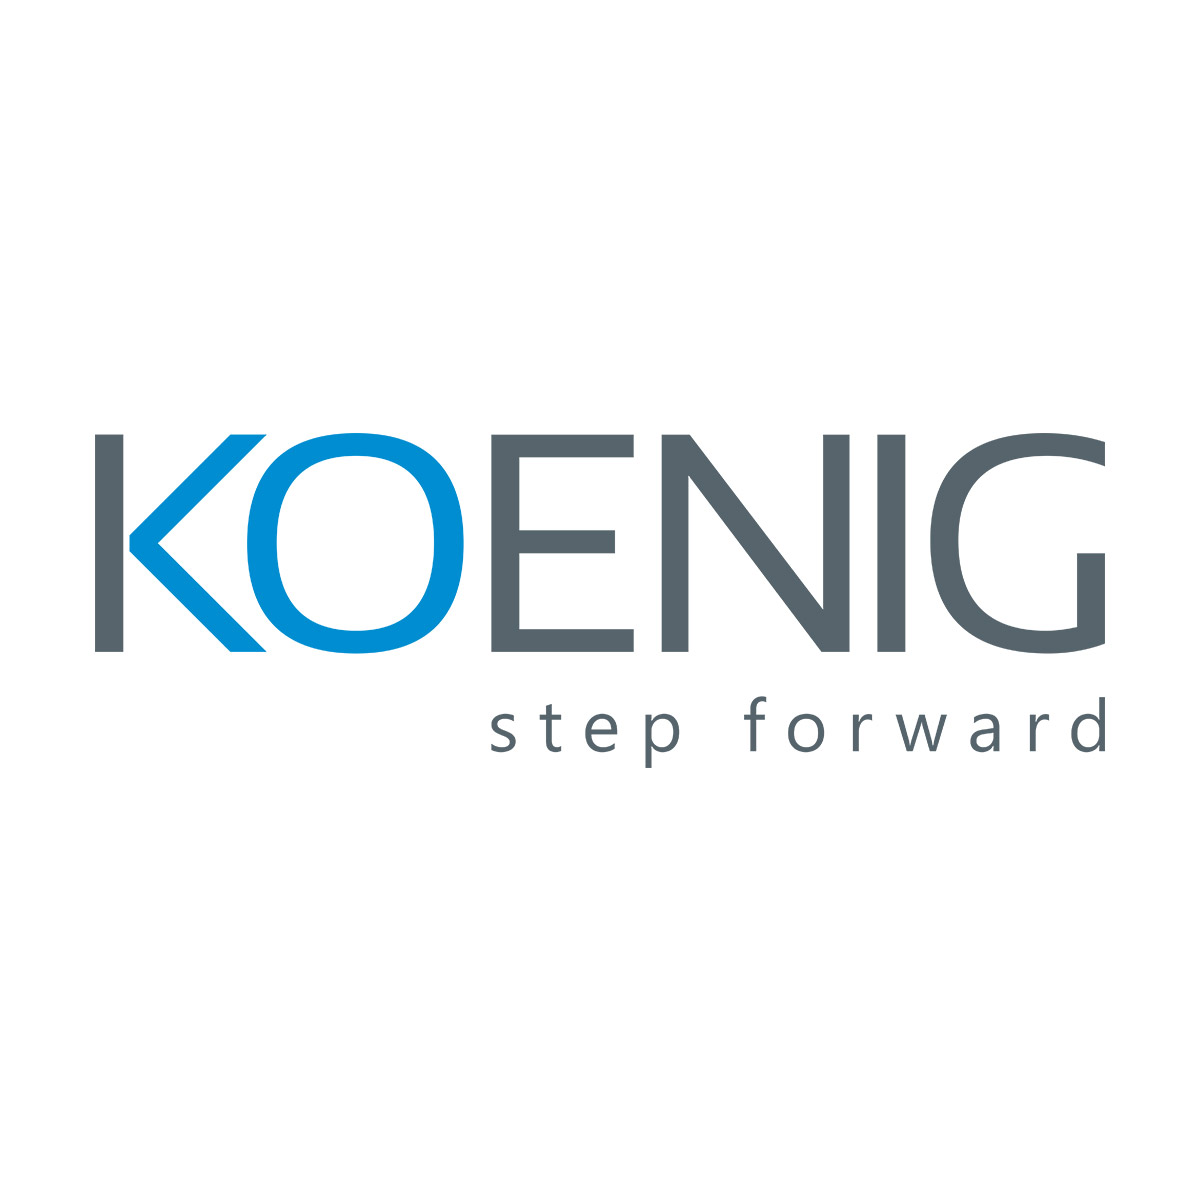 Koenig Solutions Pvt. Ltd. Logo